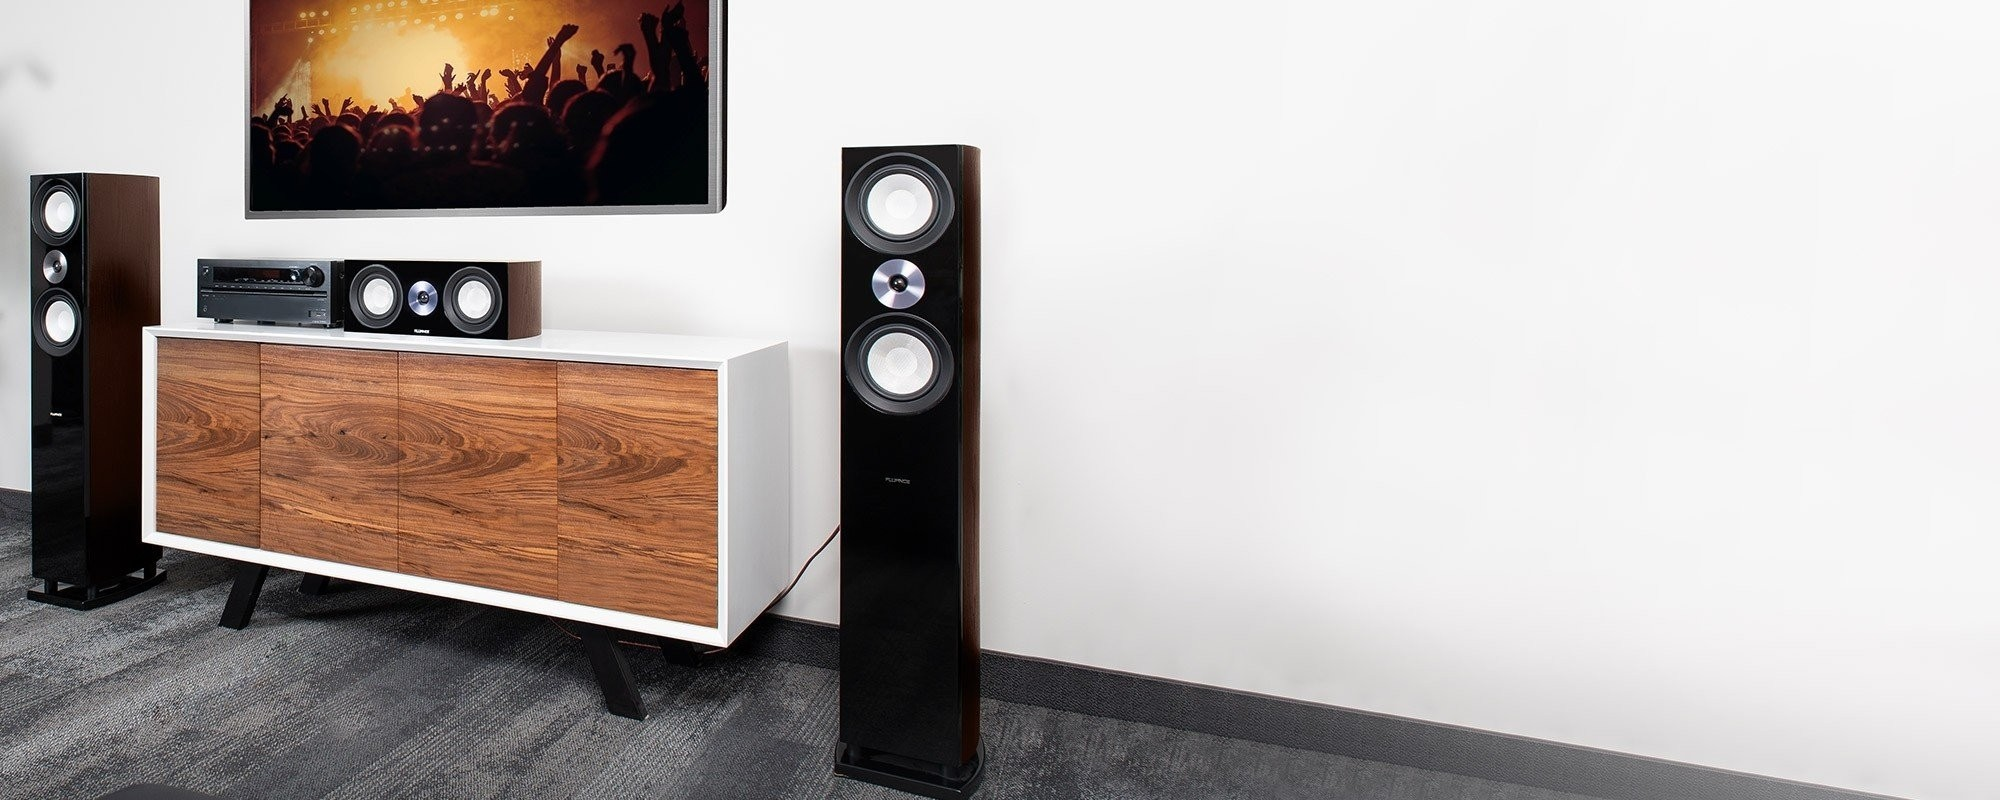 Reference Series Surround Sound Home Theater 7.1 Channel Speaker System with DB12 Subwoofer - Lifestyle Desktop